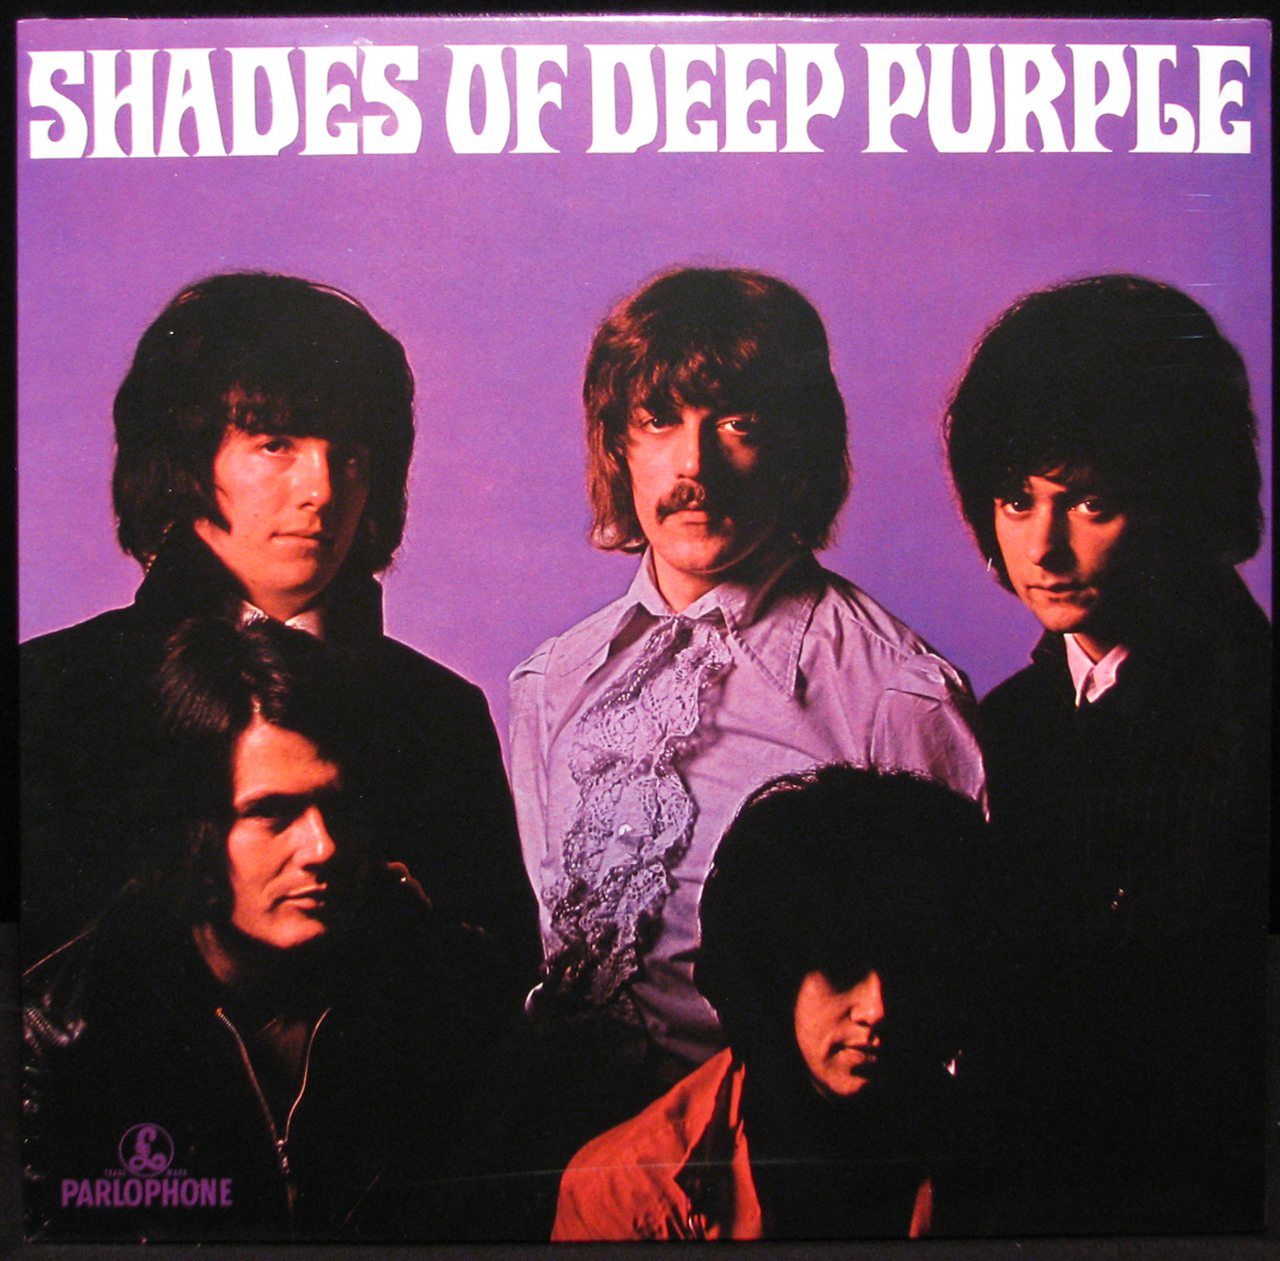 Shades of Deep Purple RSD 2014 Purple Vinyl UK press